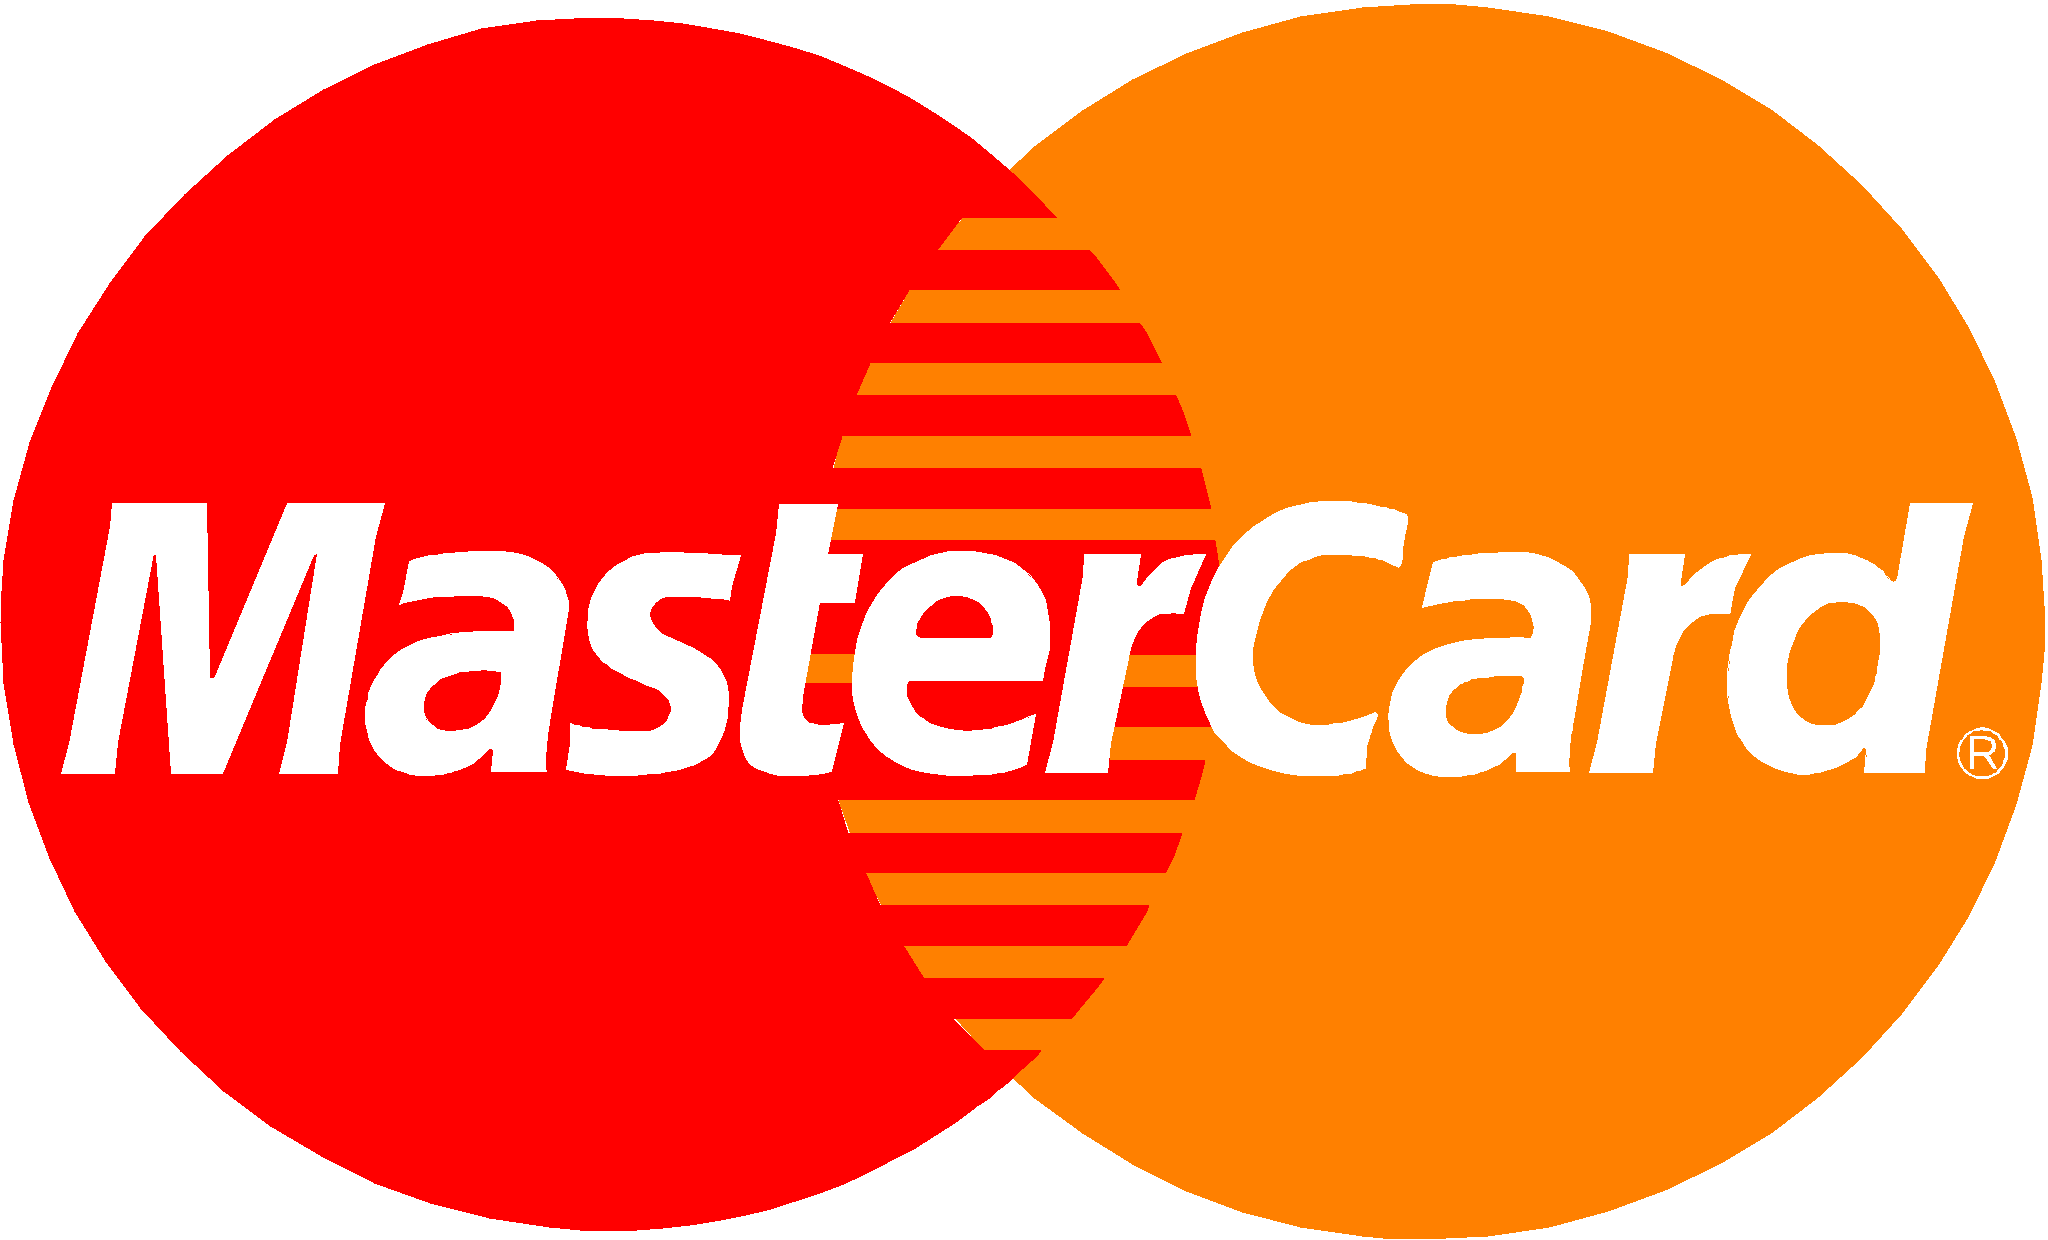 Clipart File PNG Mastercard 6940-Clipart File PNG Mastercard 6940-5